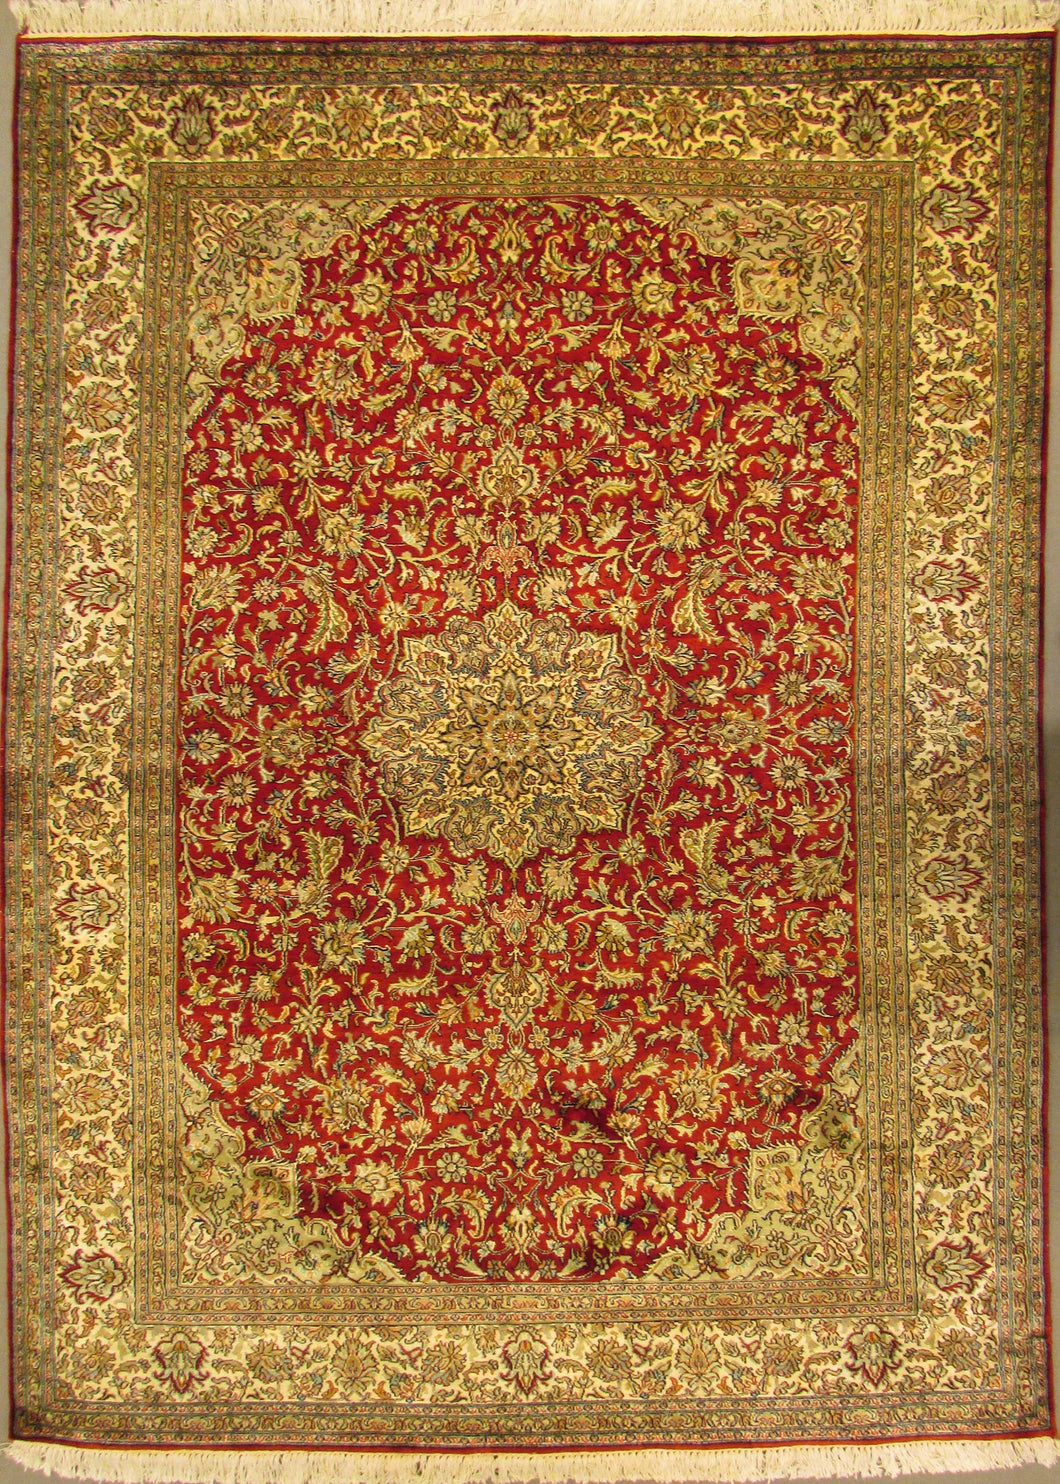 The Rugs Cafe Carpets 5x7 / Red Charbagh (Four Gardens) Hand Knotted Silk Area Rug- Red 01